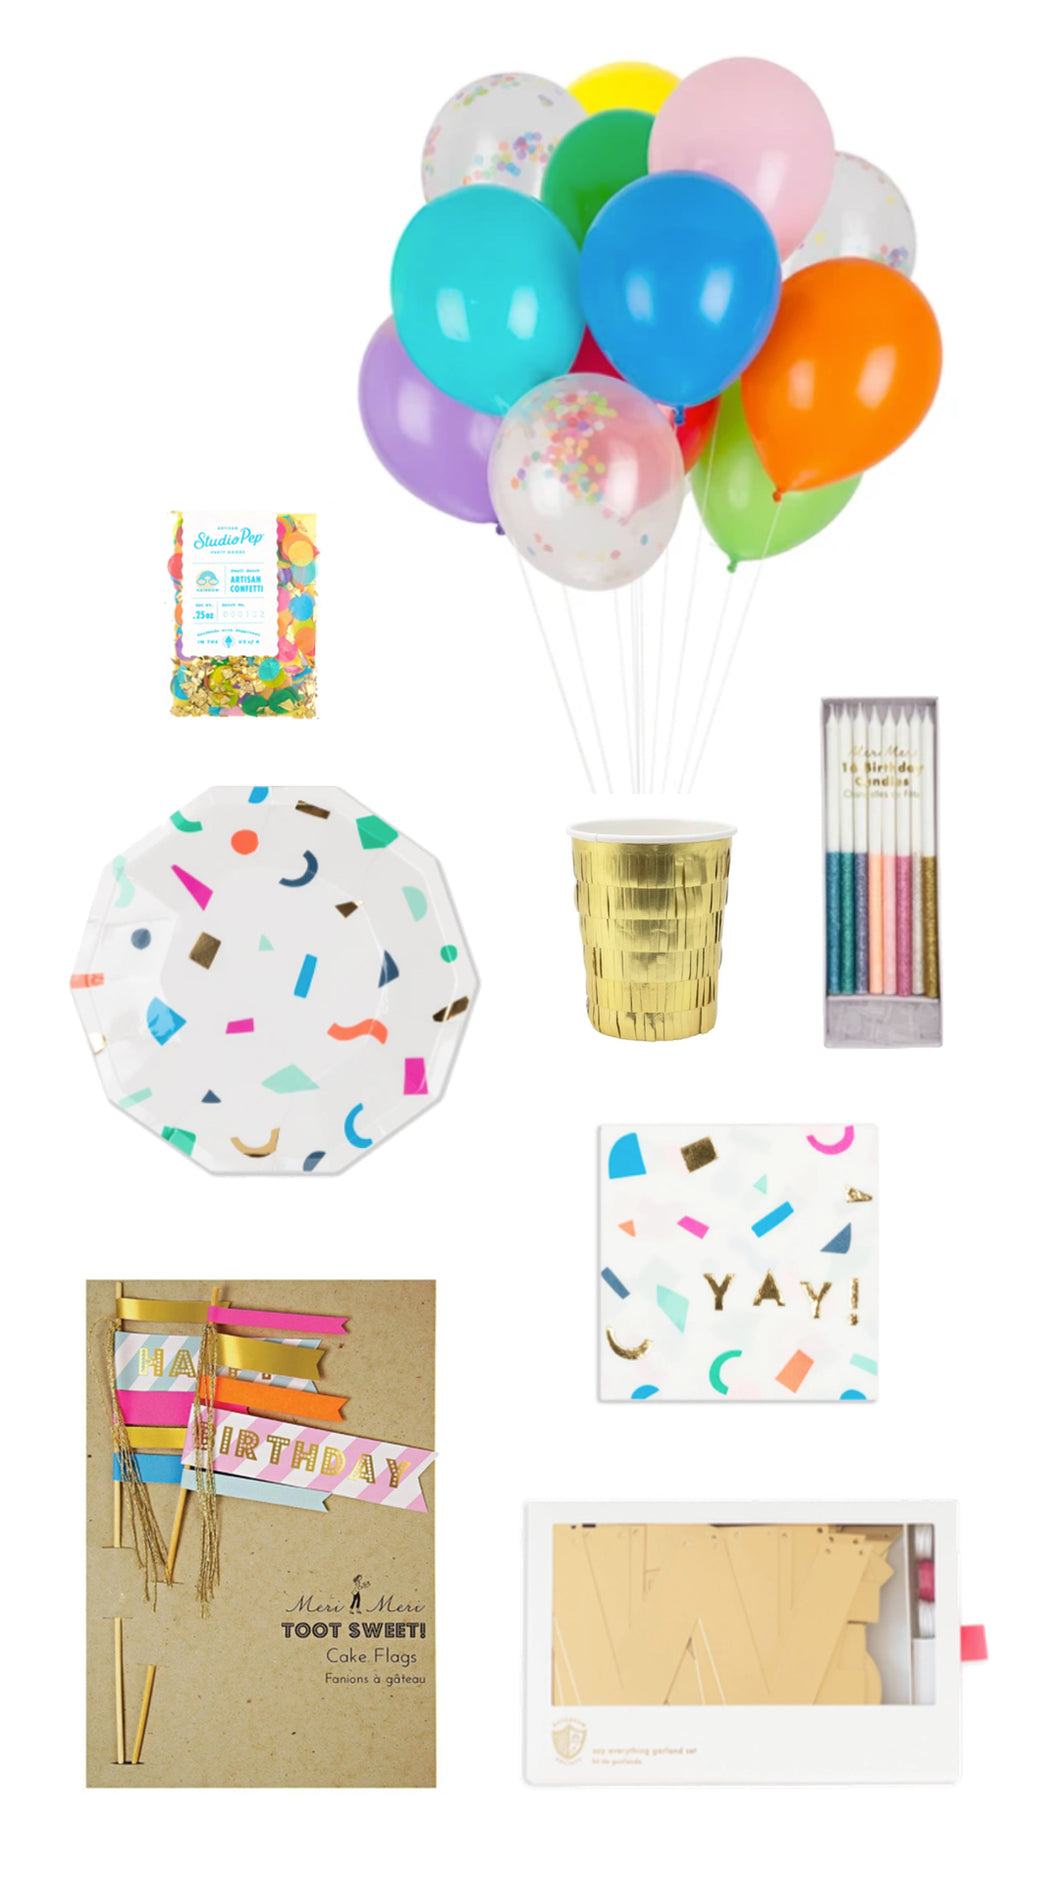 HAPPY BIRTHDAY PARTY BOX